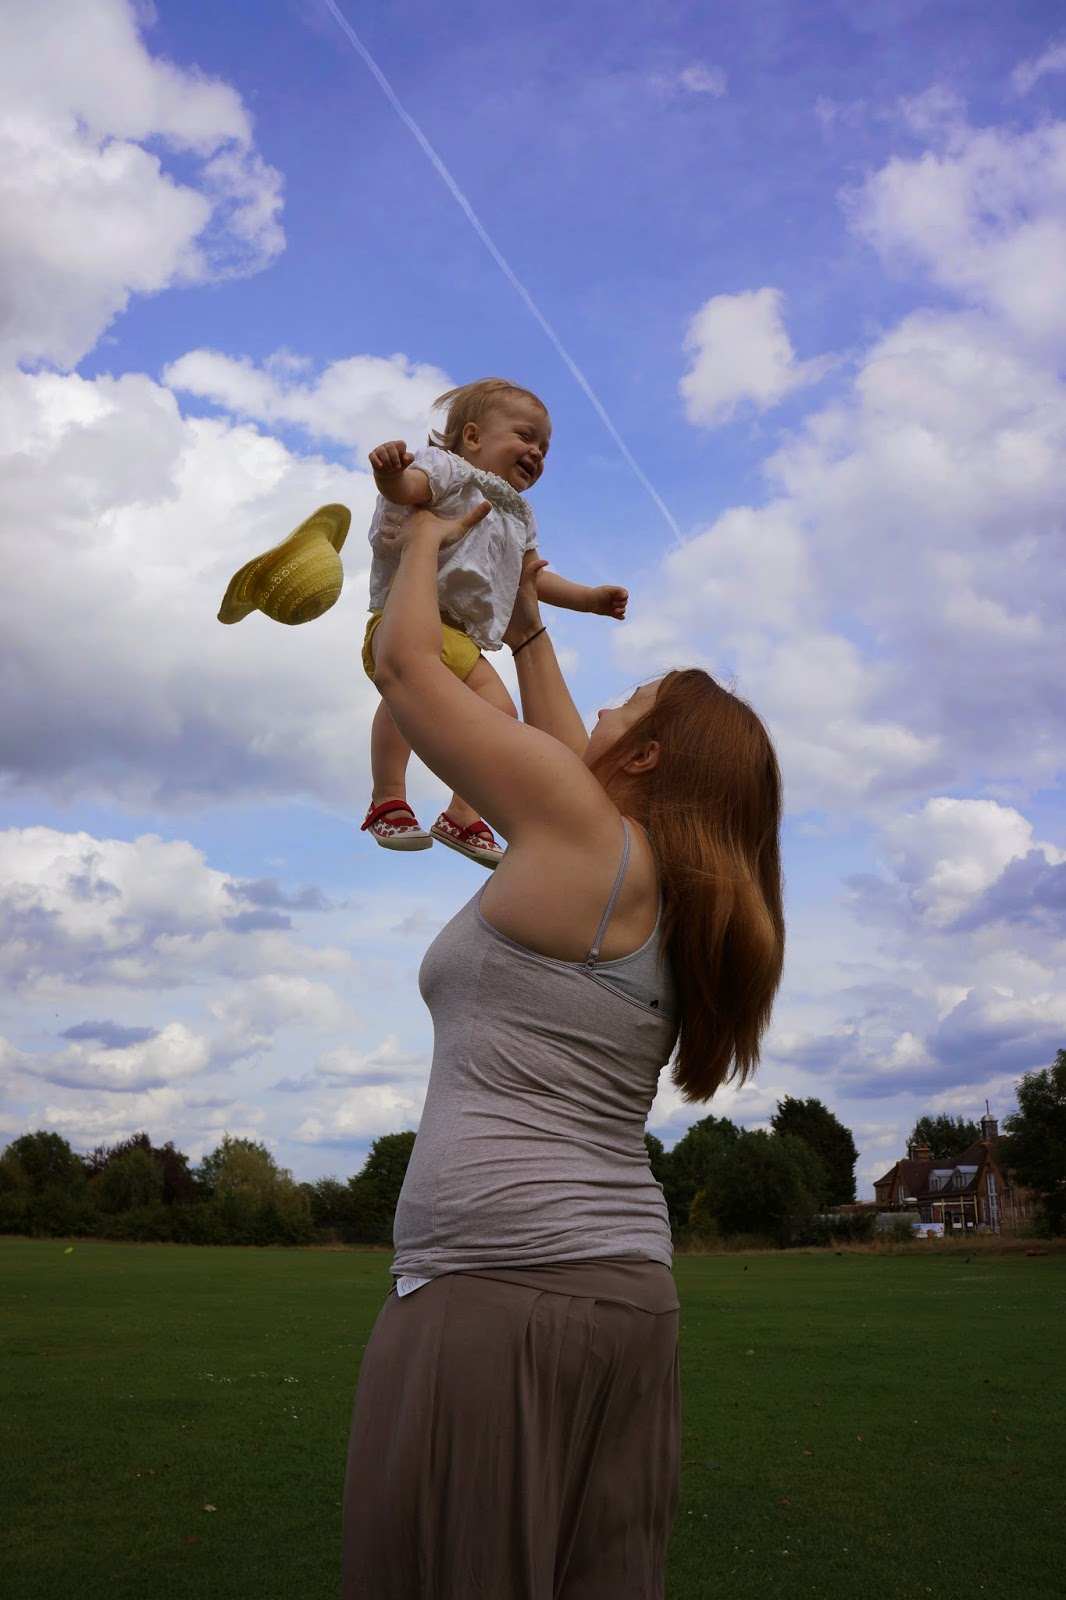 mum throwing baby in the air